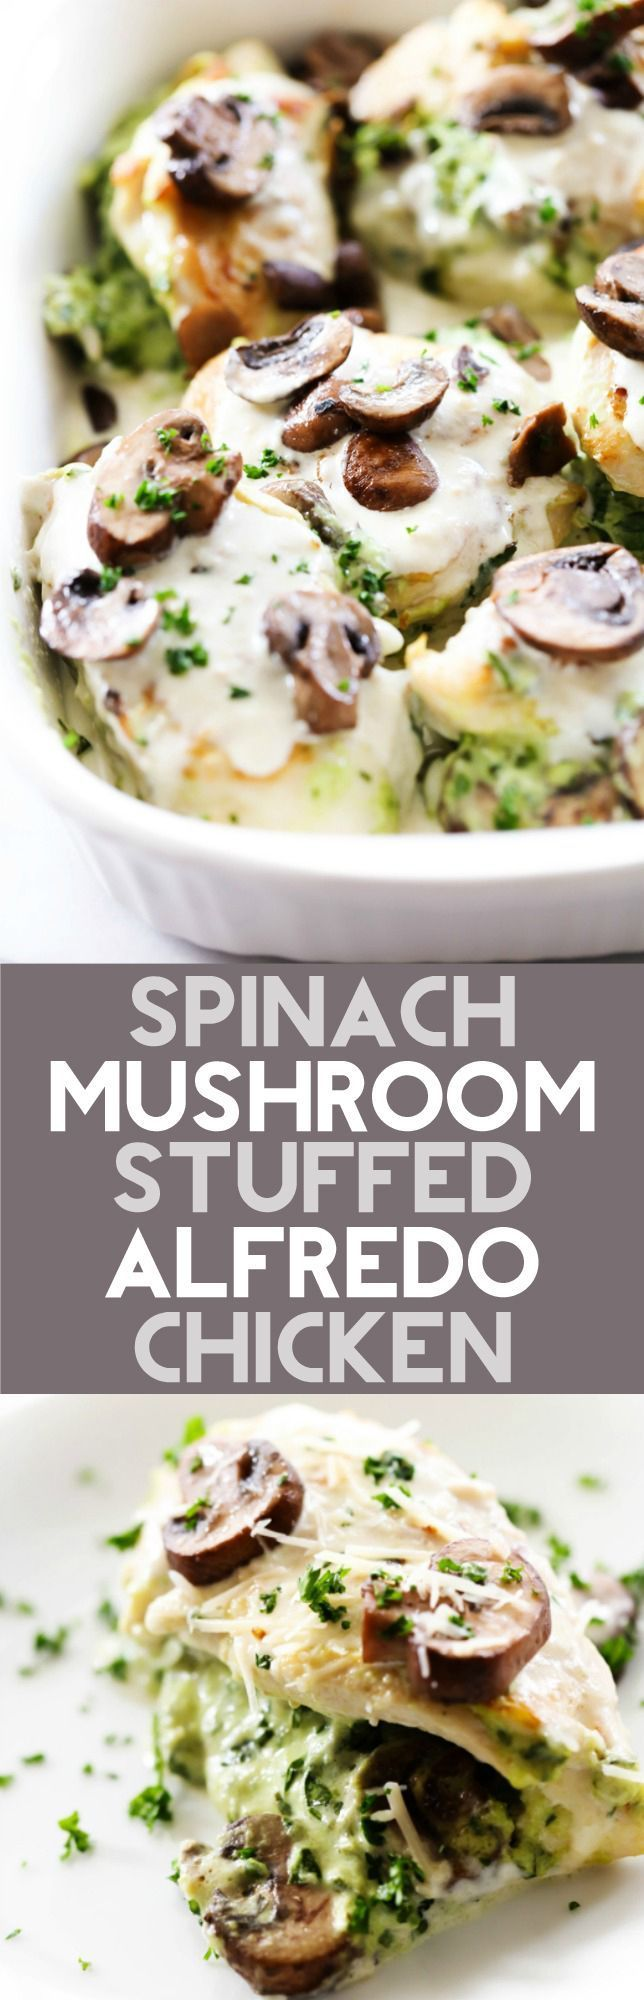 This Spinach Mushroom Stuffed Alfredo Chicken is a keeper. It is loaded with flavor and incredible ingredients and will become a new dinner staple.